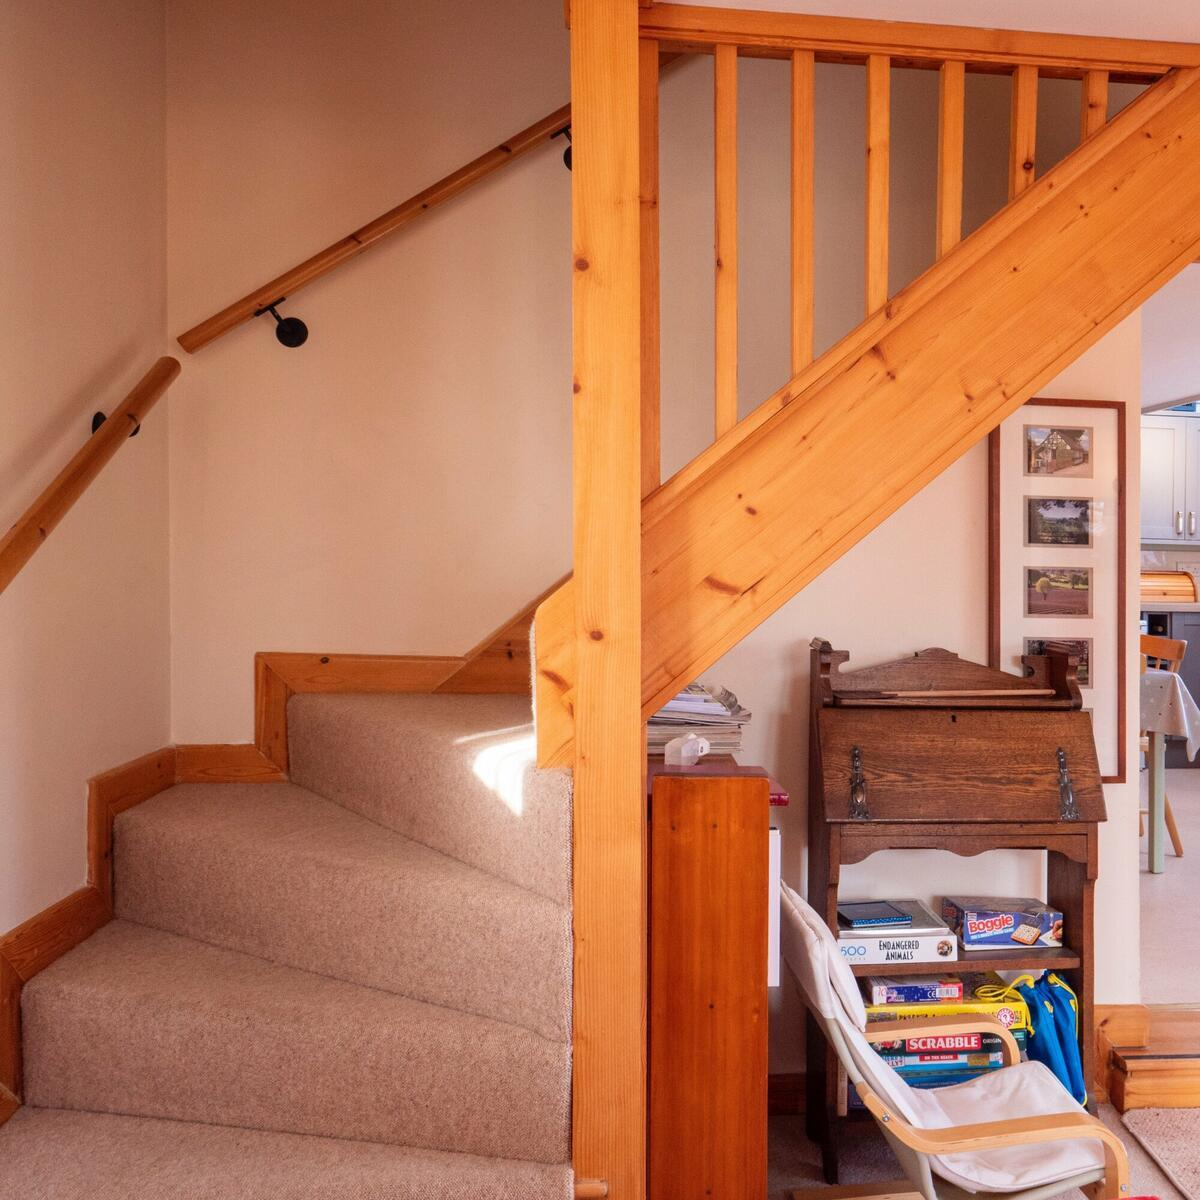 showing the tight turn on the stairs